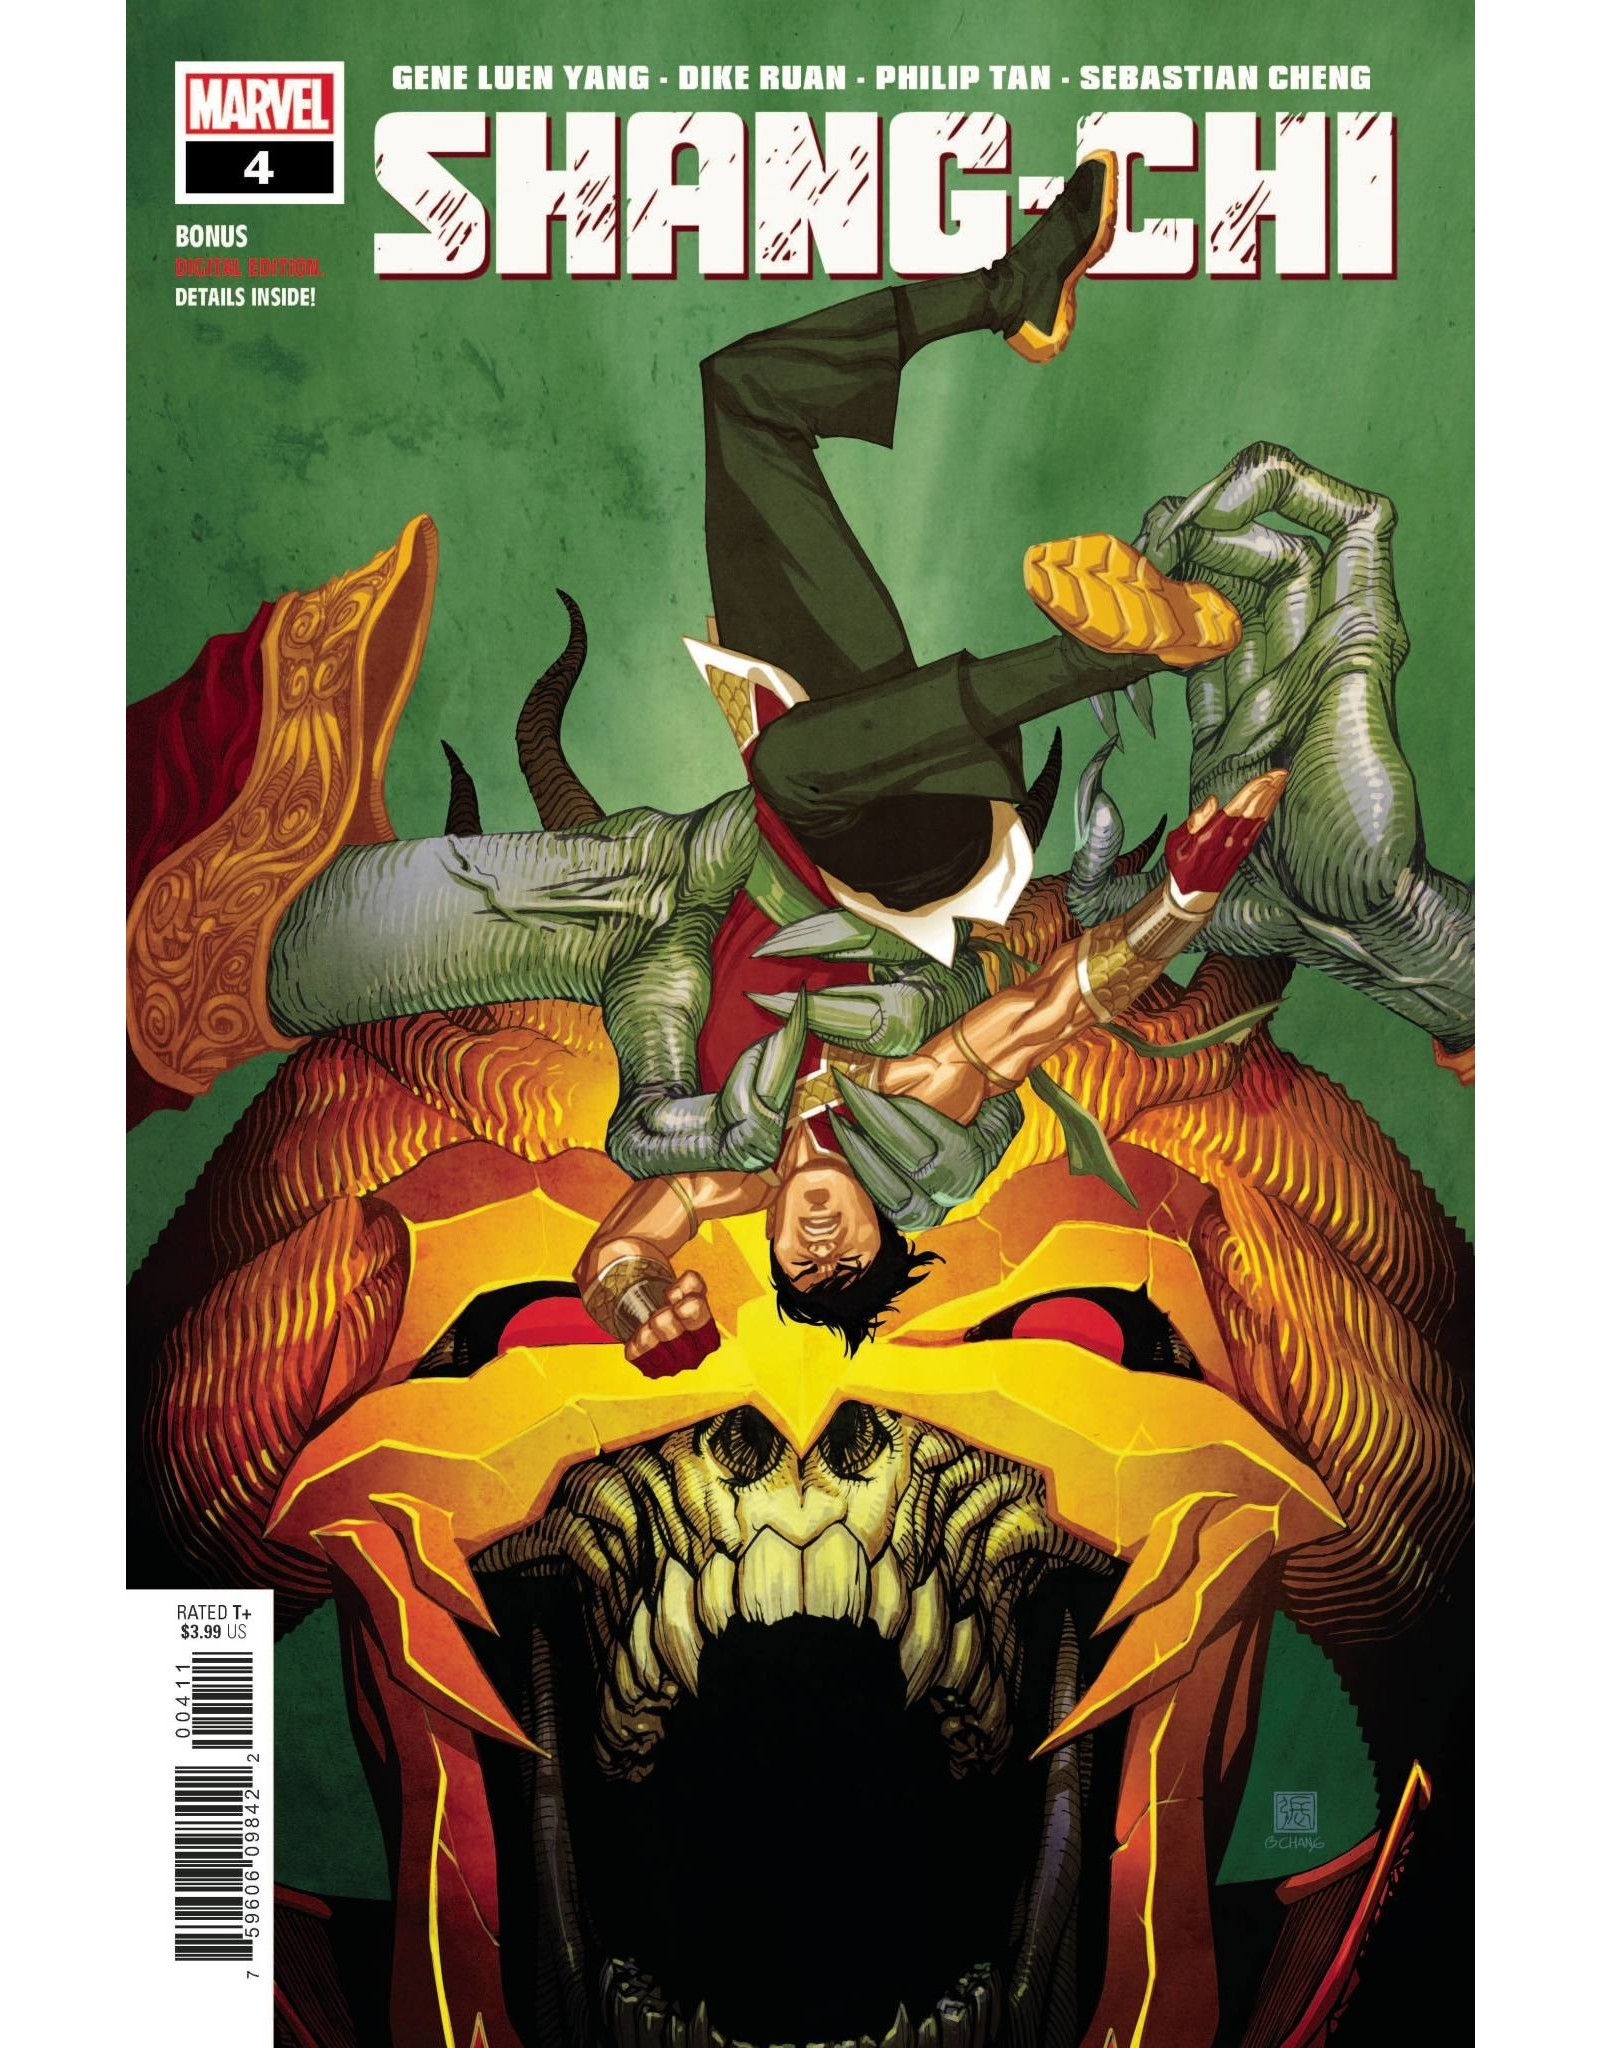 Marvel Comics SHANG-CHI #4 (OF 5)